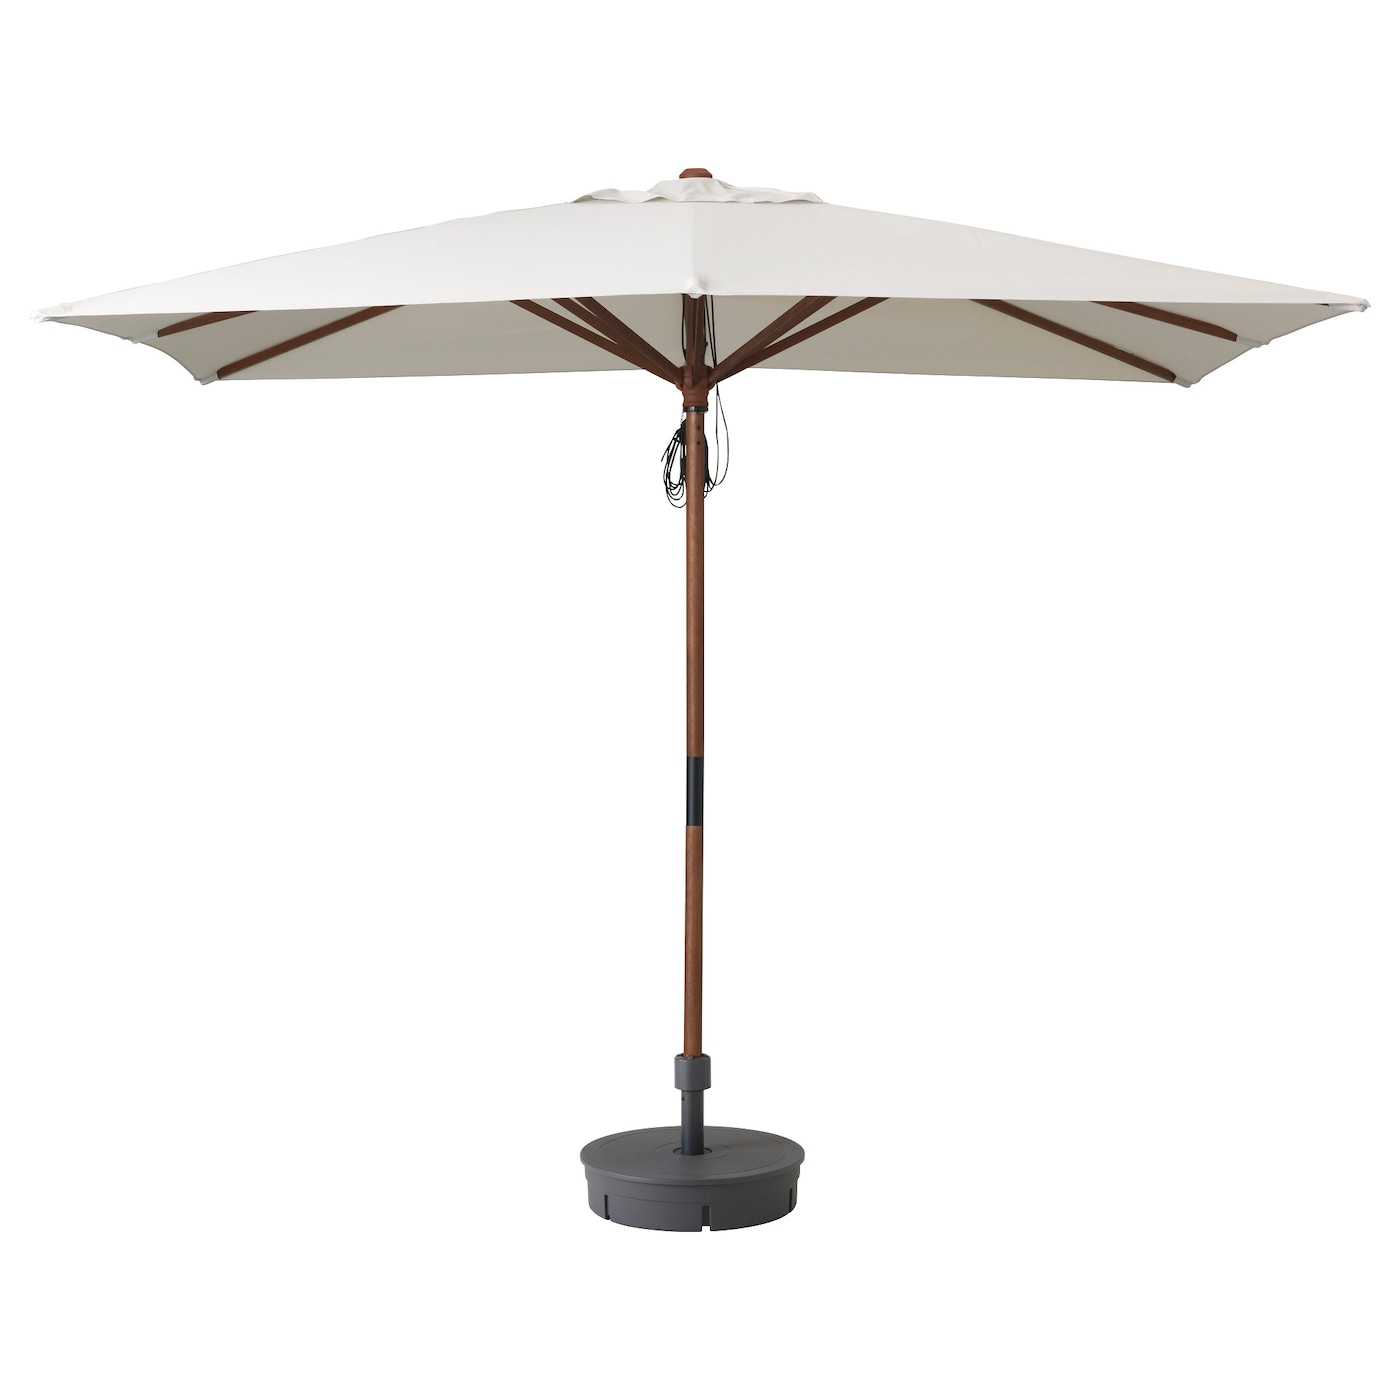 Ikea LÅngholmen Parasol With Base The Air Vent Reduces Wind Pressure And Allows Heat To Circulate